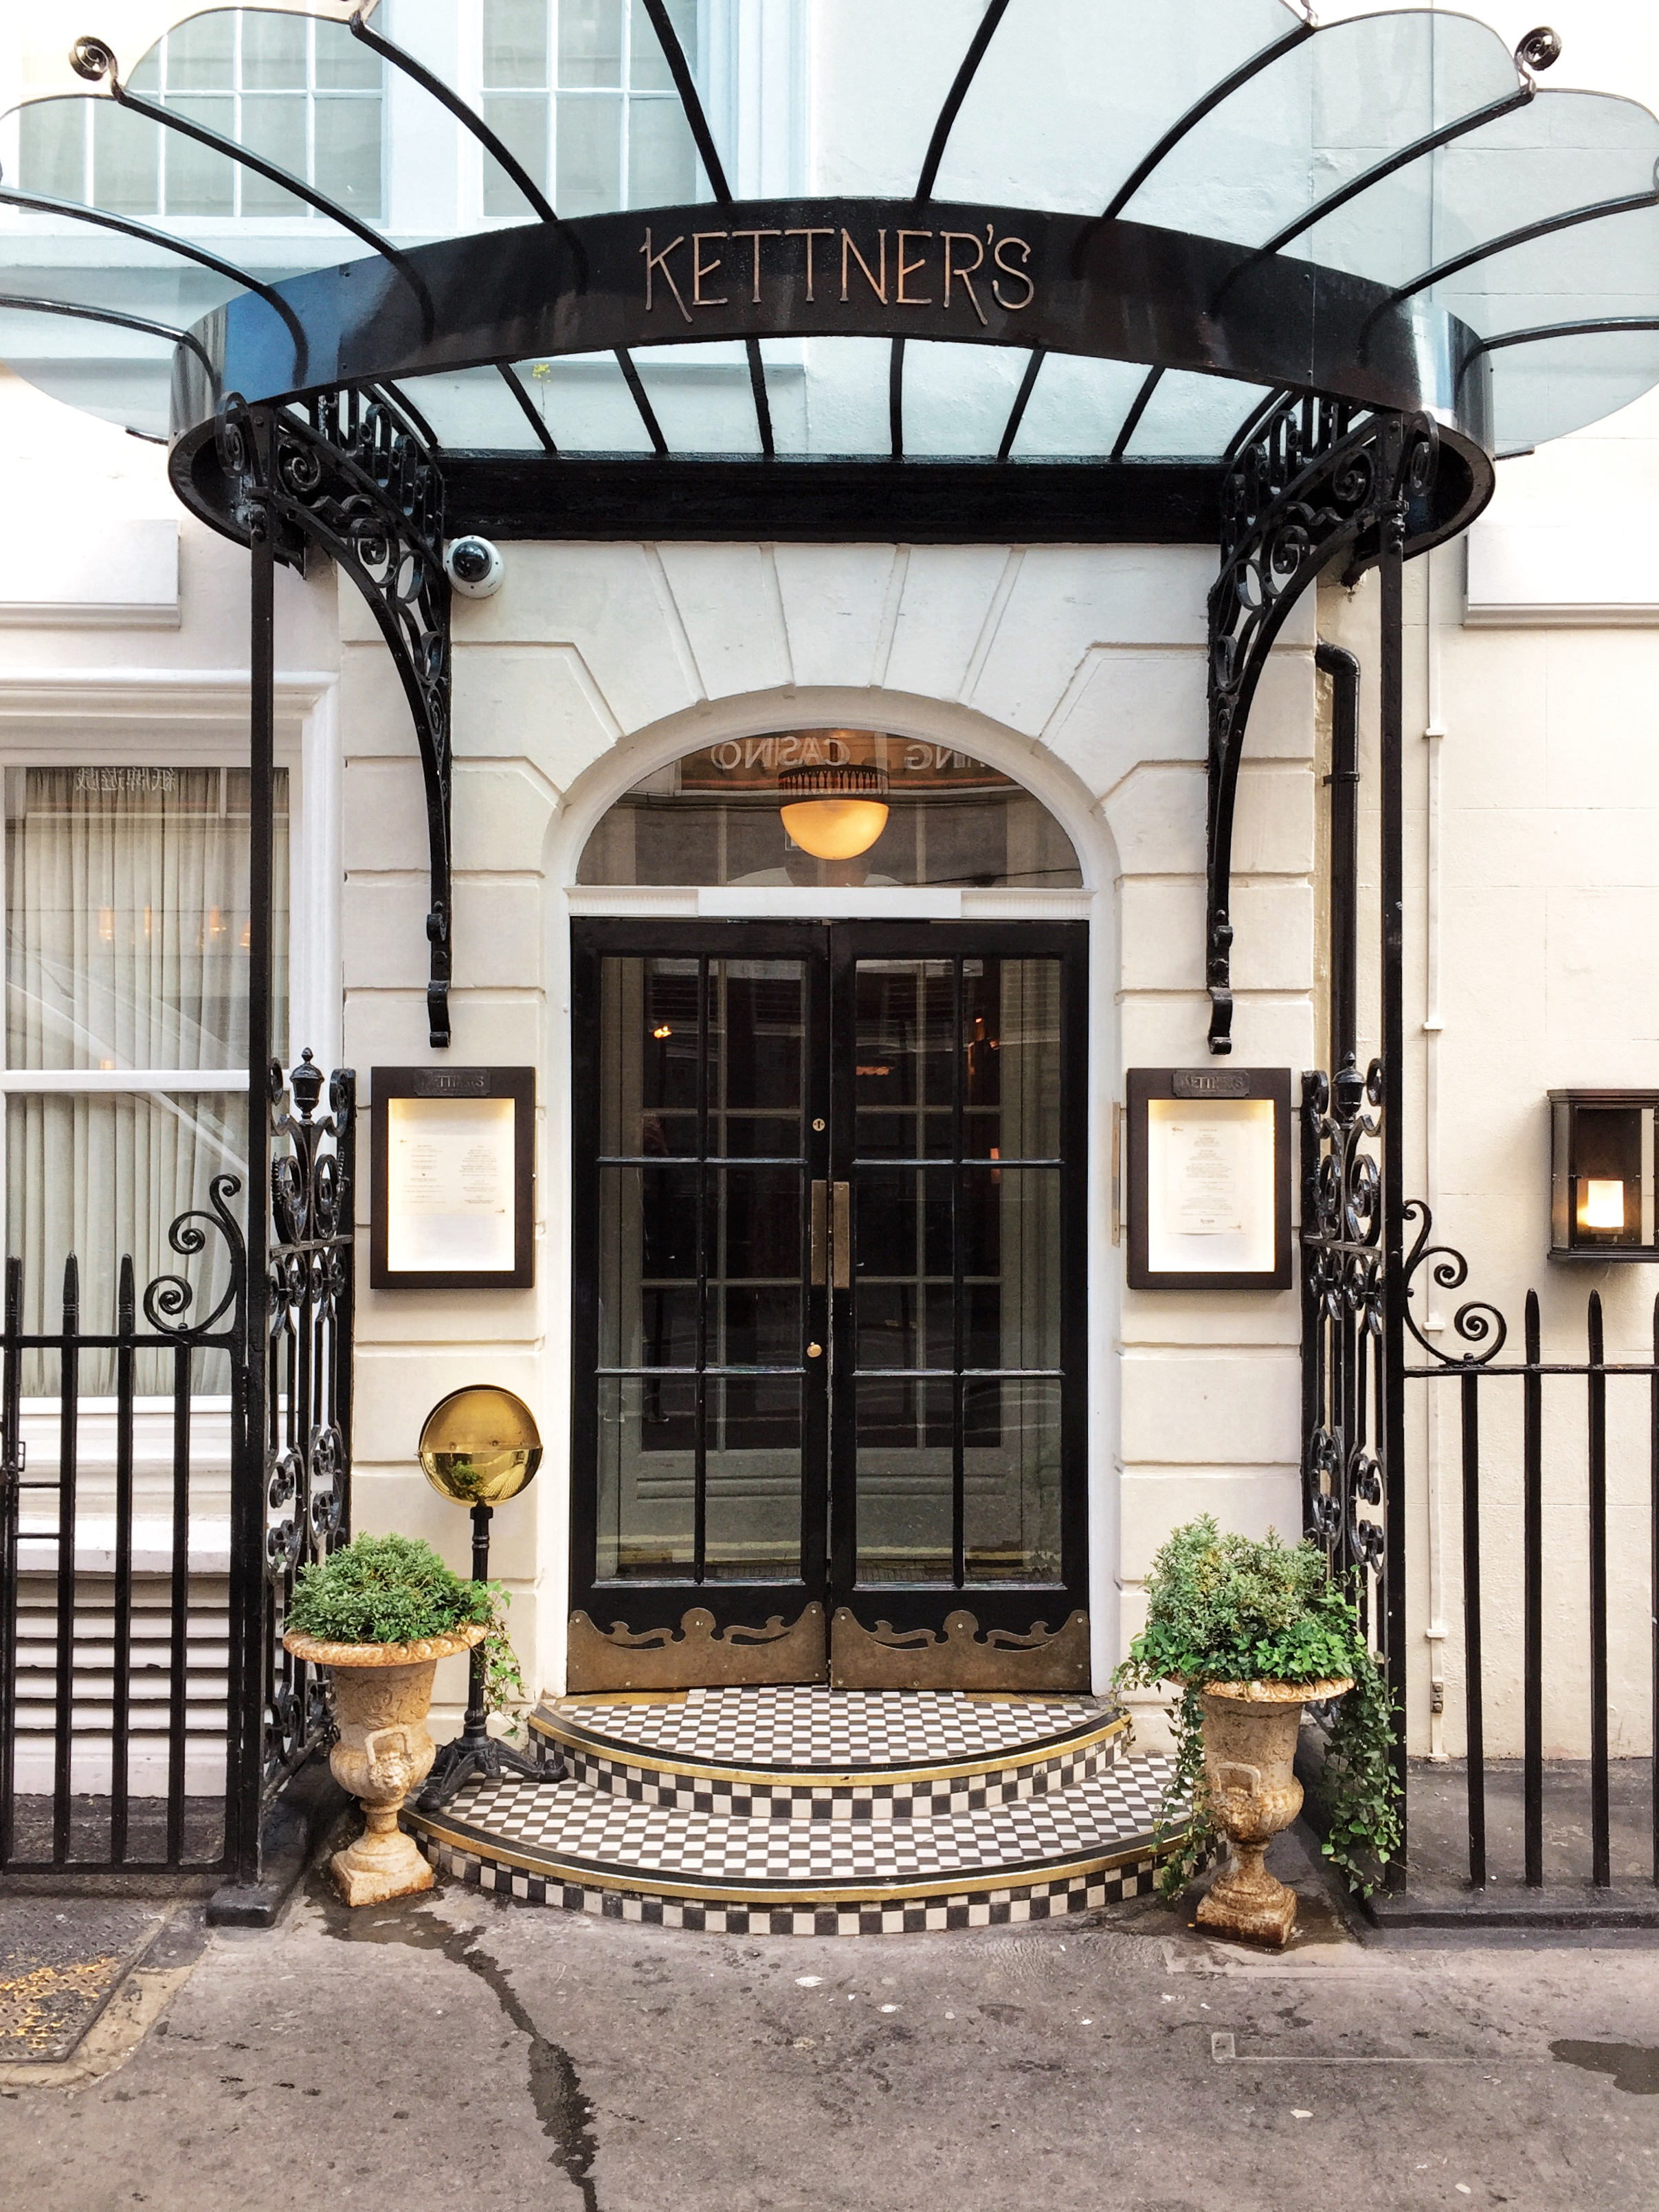 where to stay in soho london